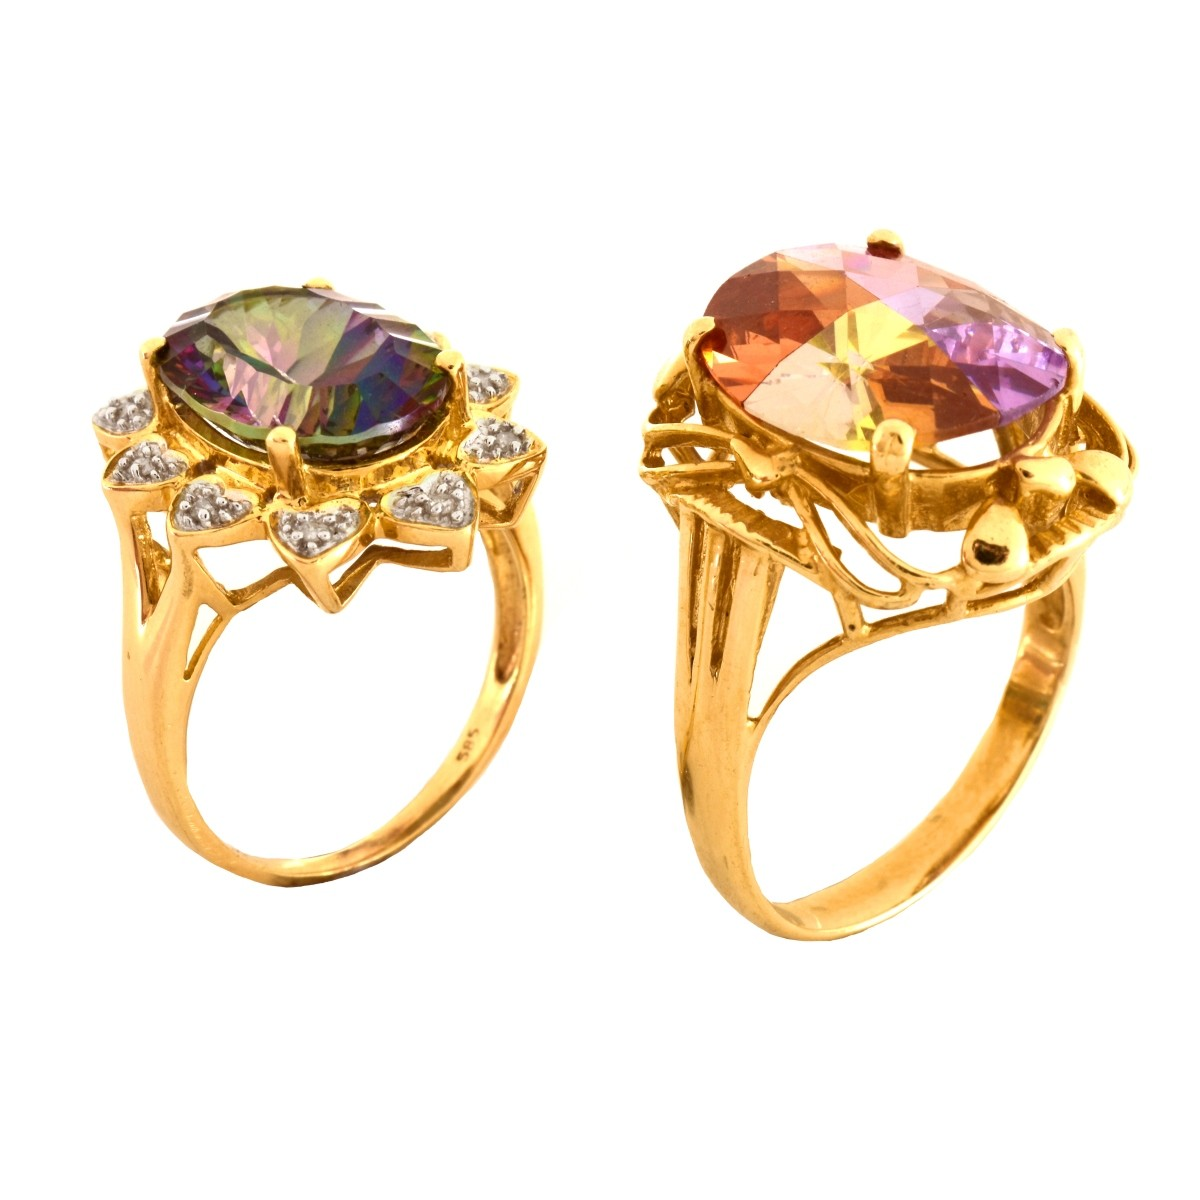 Two 14K Gold Fashion Rings